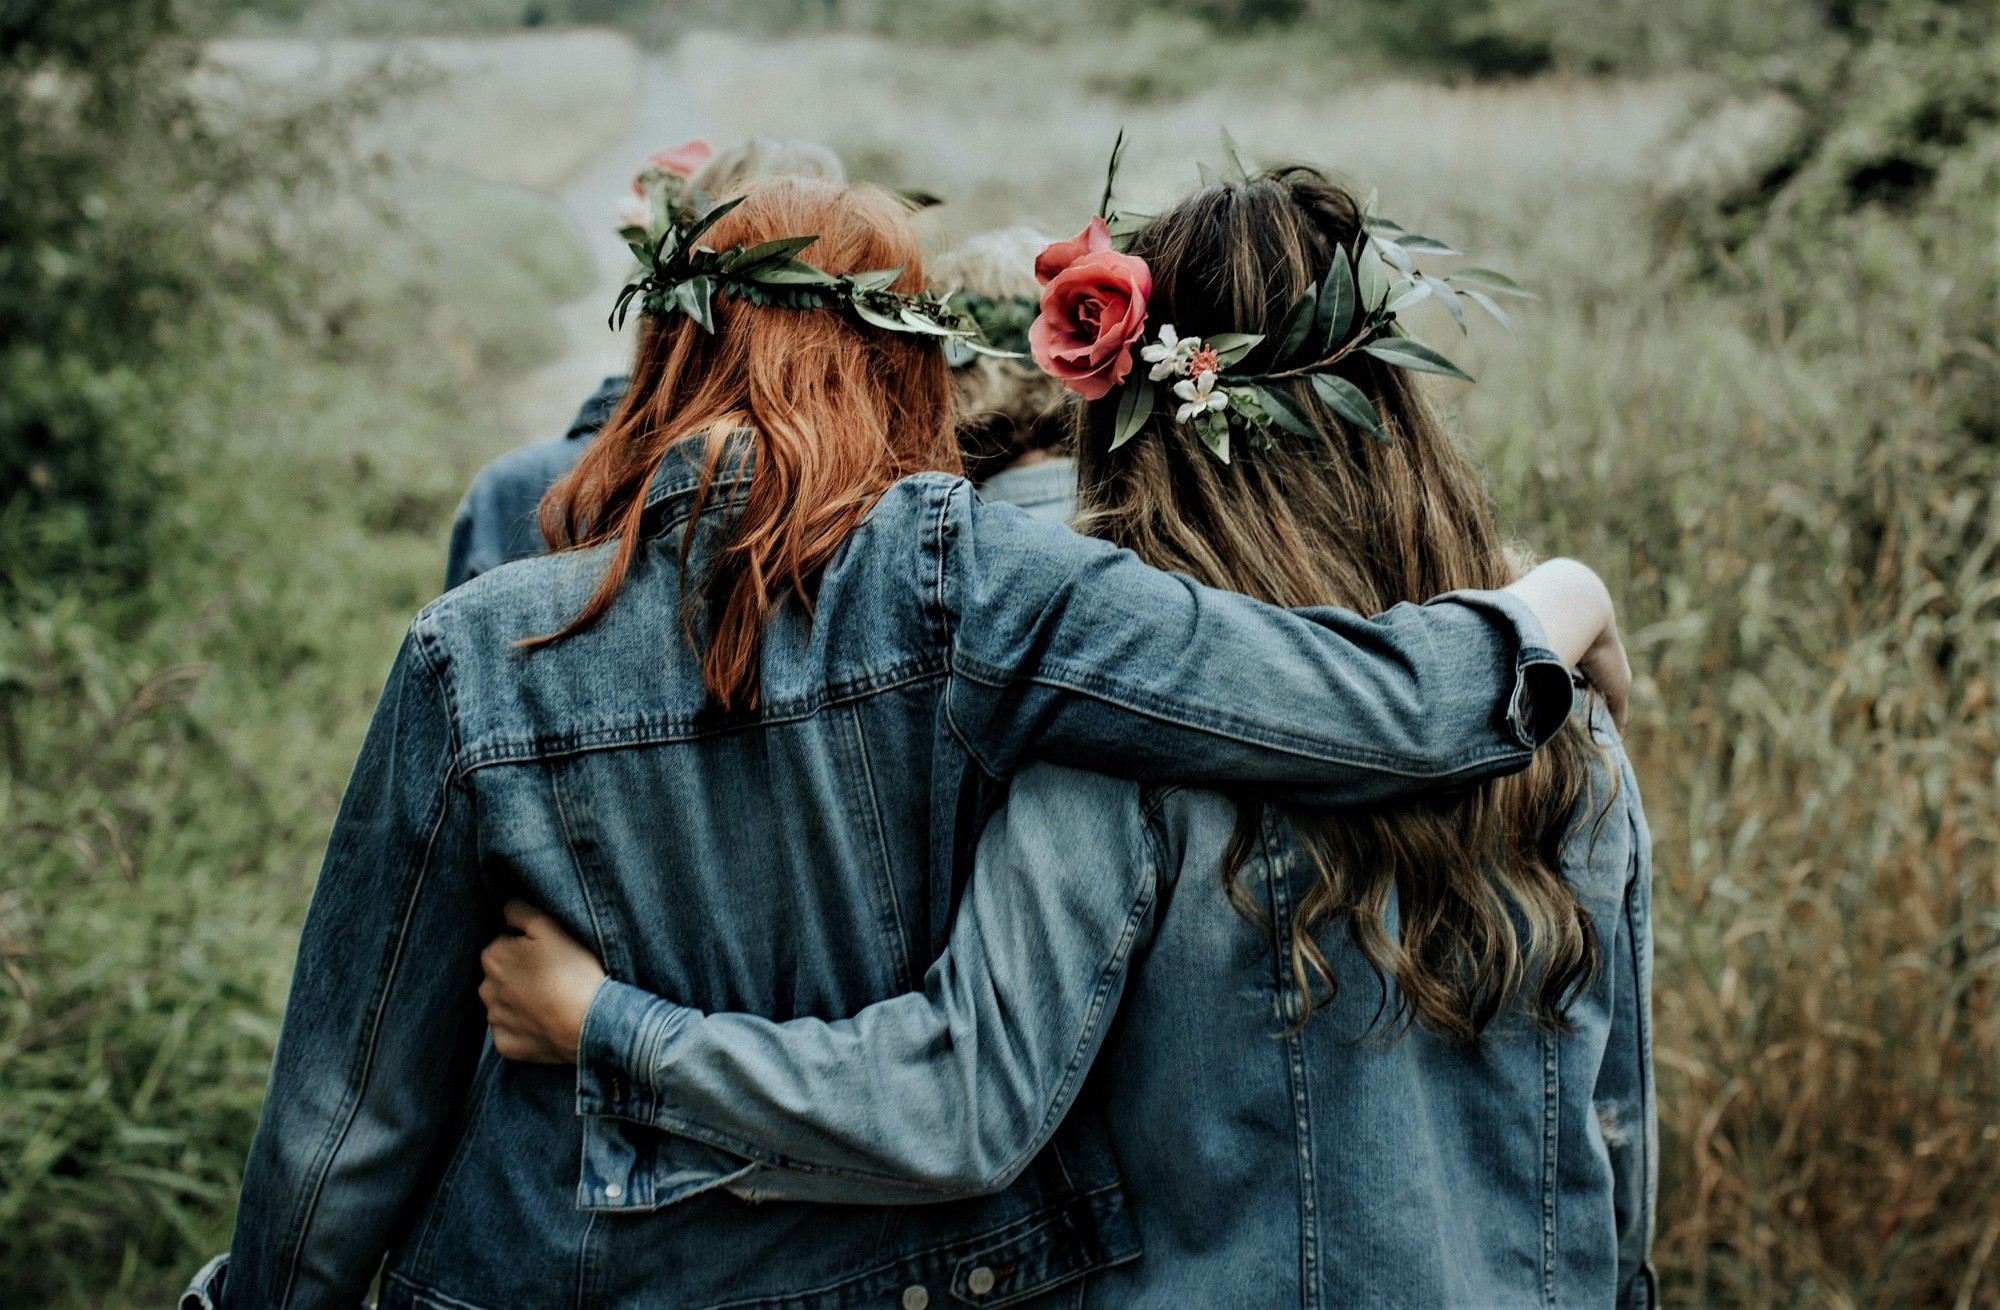 back view of two girls wearing denim jackets and flowers in their hair with arms around each other